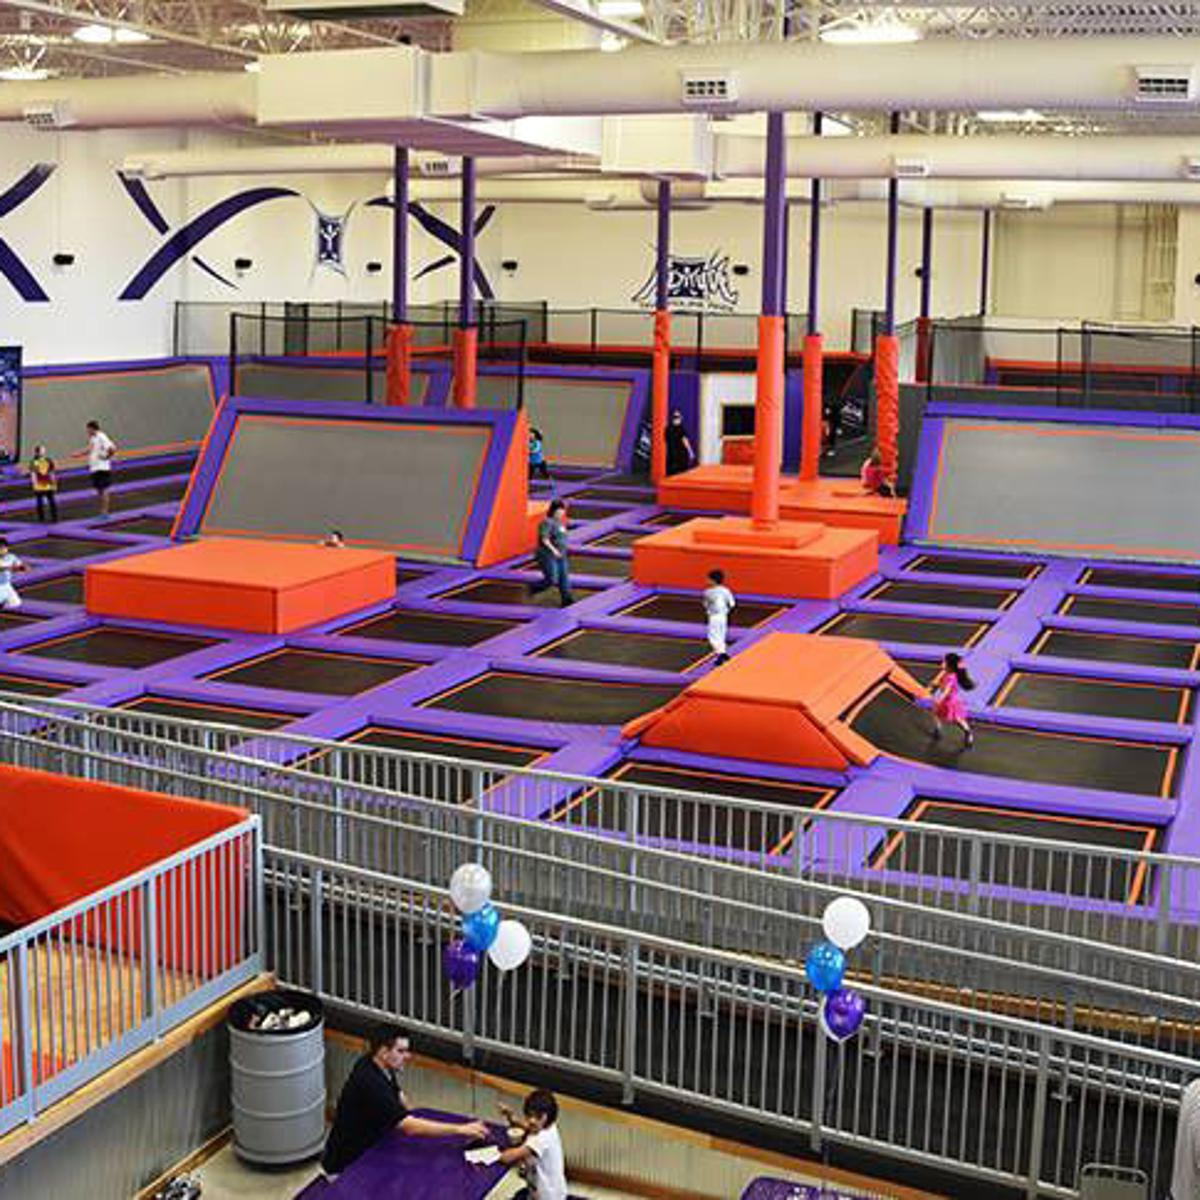 Trampoline Park Planned In Empty Mooresville Big Box Site State